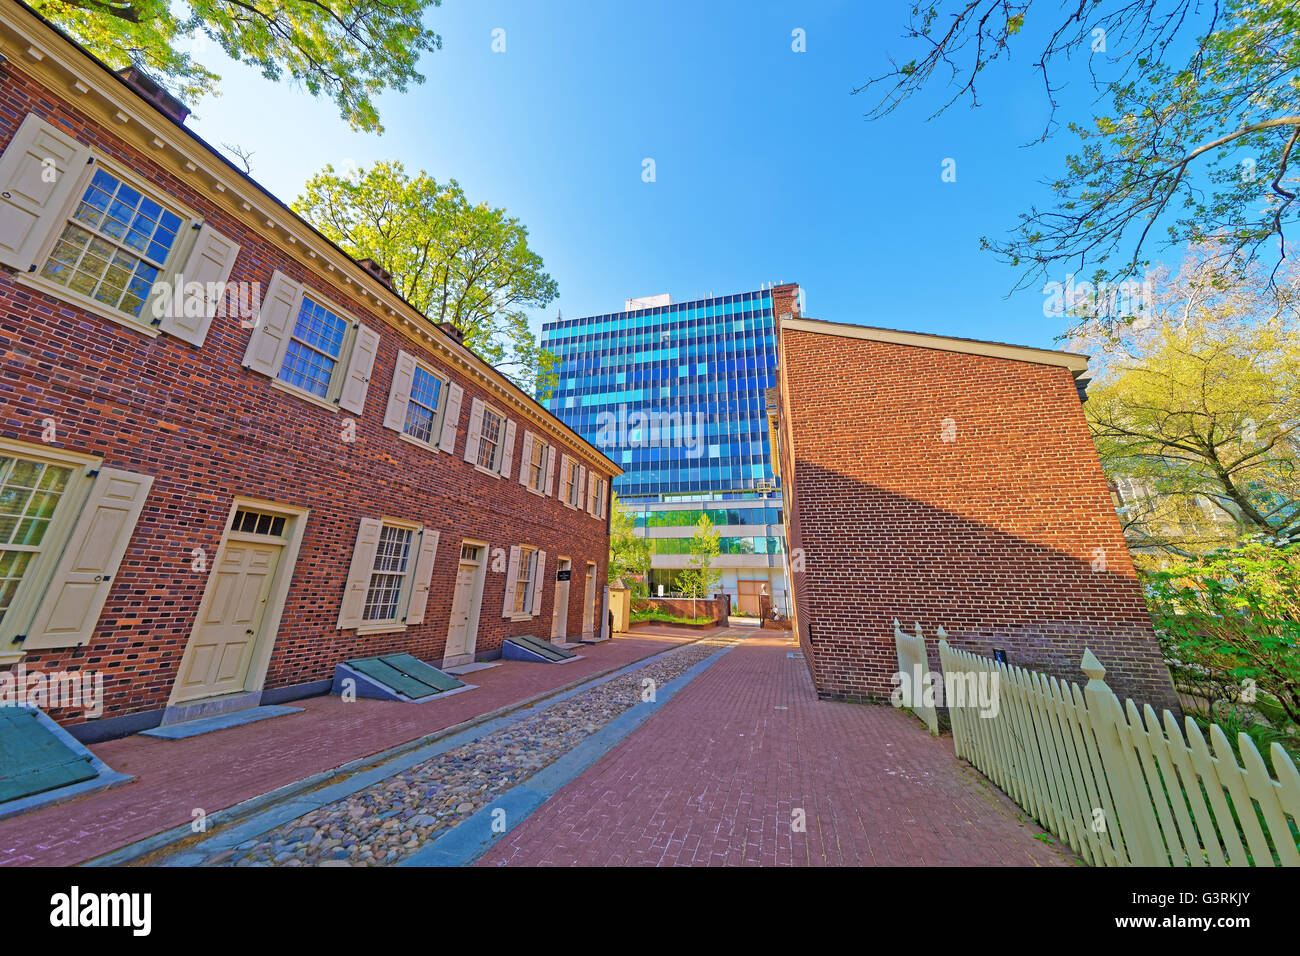 New Hall Military Museum in the Old City in Philadelphia, Pennsylvania, the USA. - Stock Image